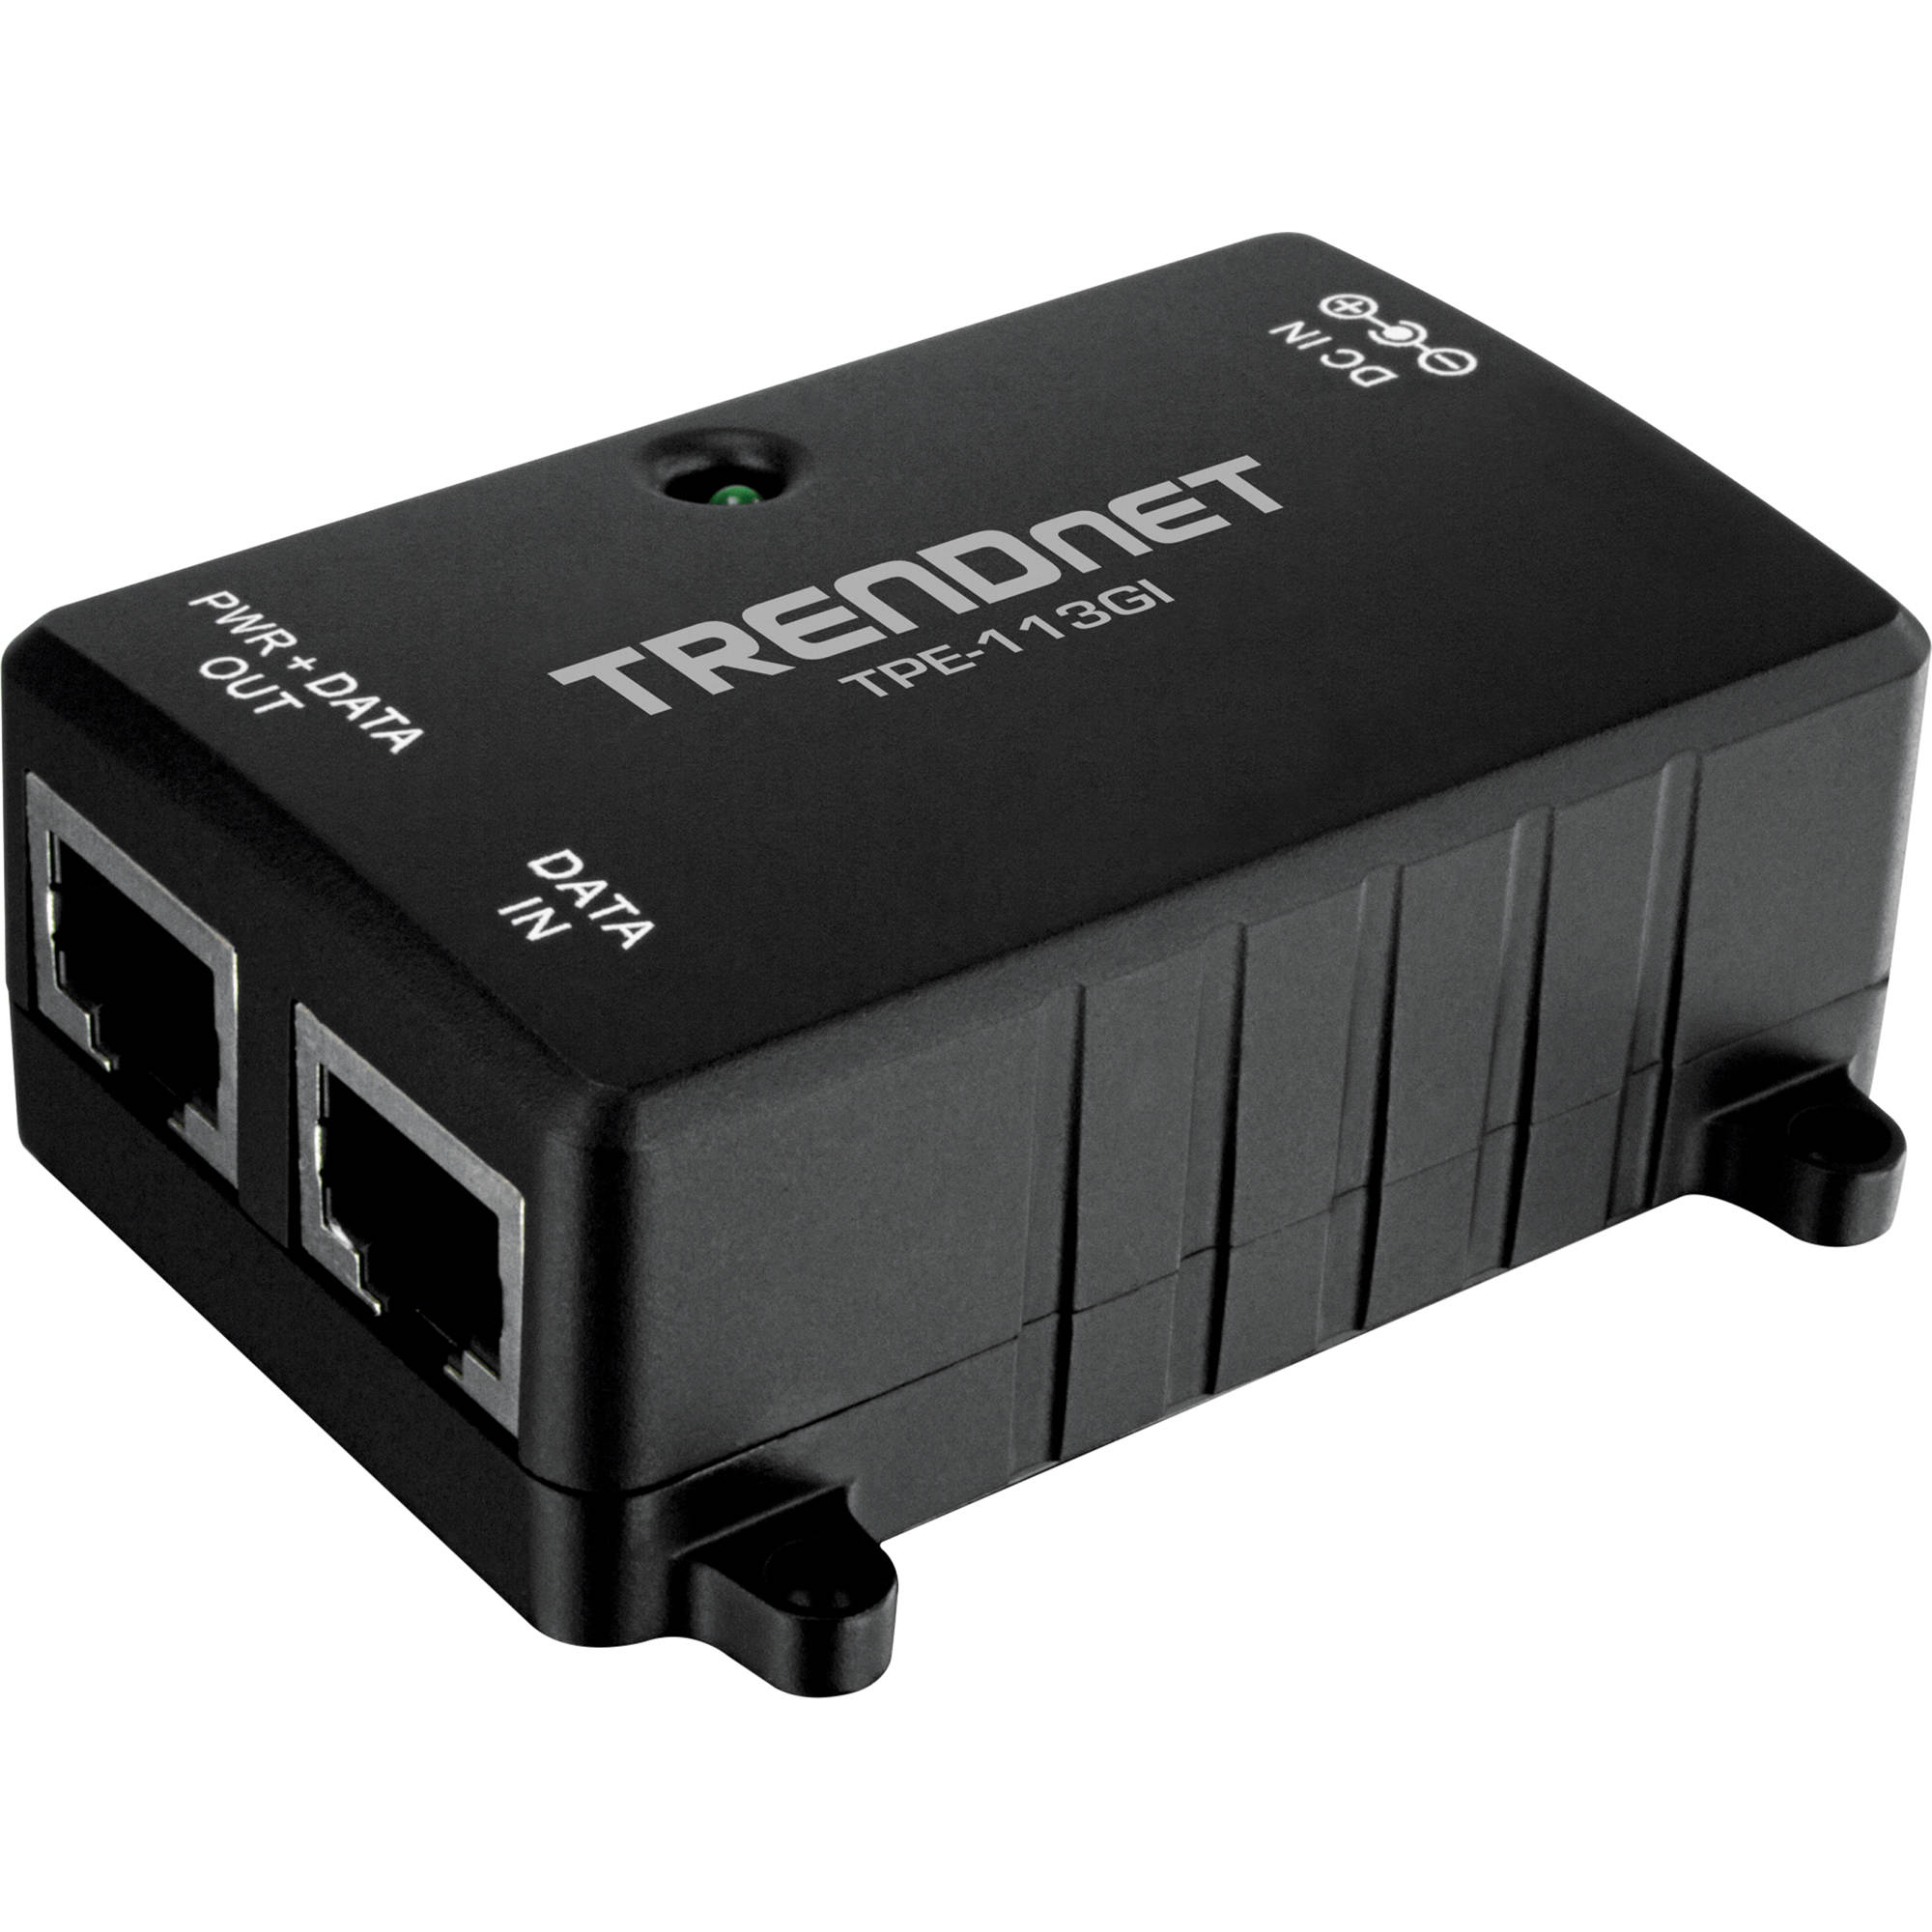 Injector TRENDnet Gigabit PoE